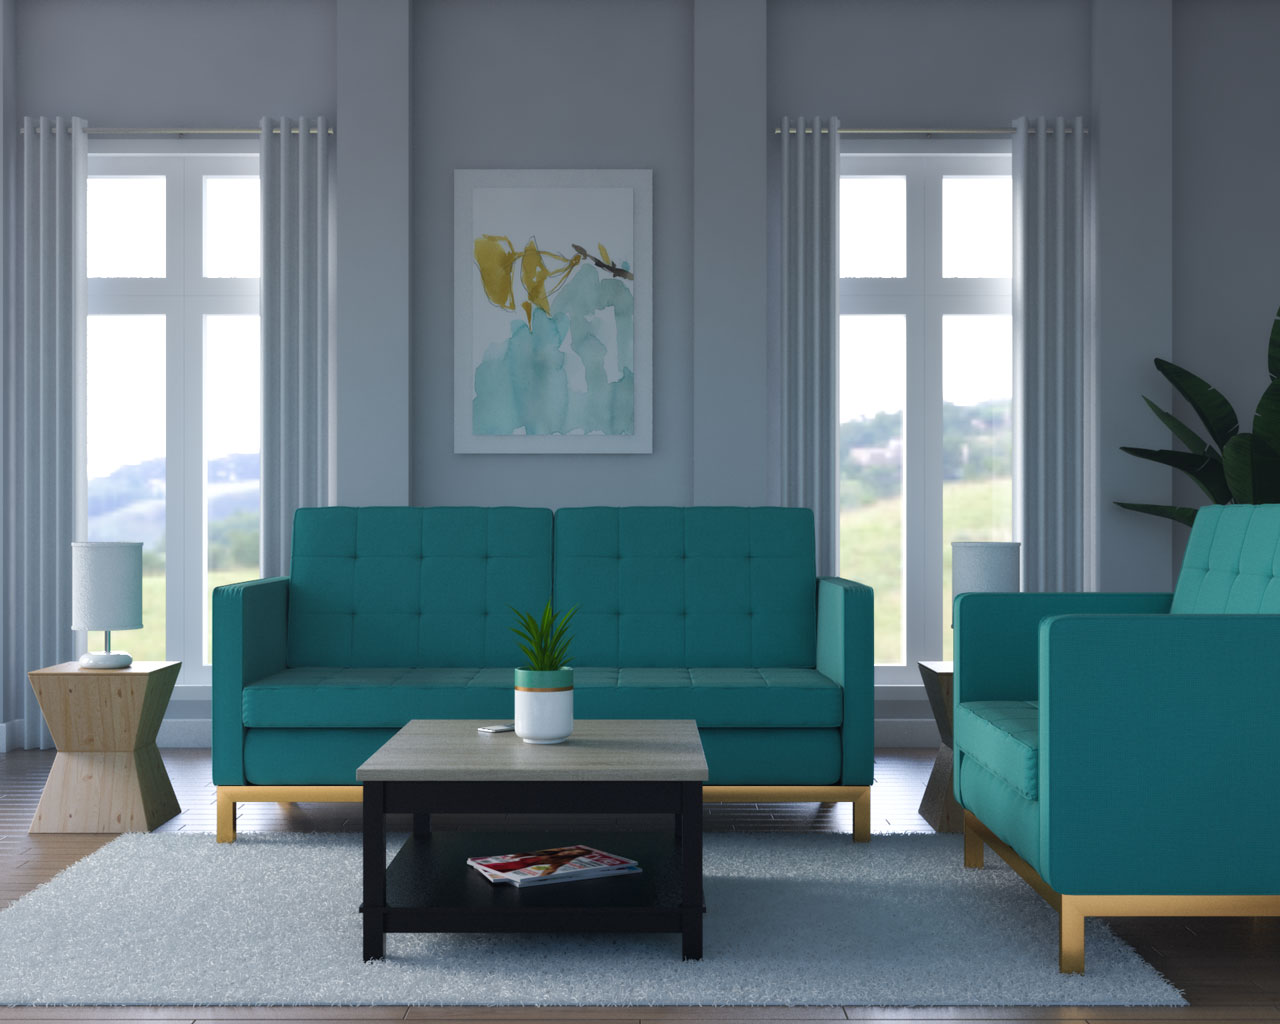 Gray walls with teal decor